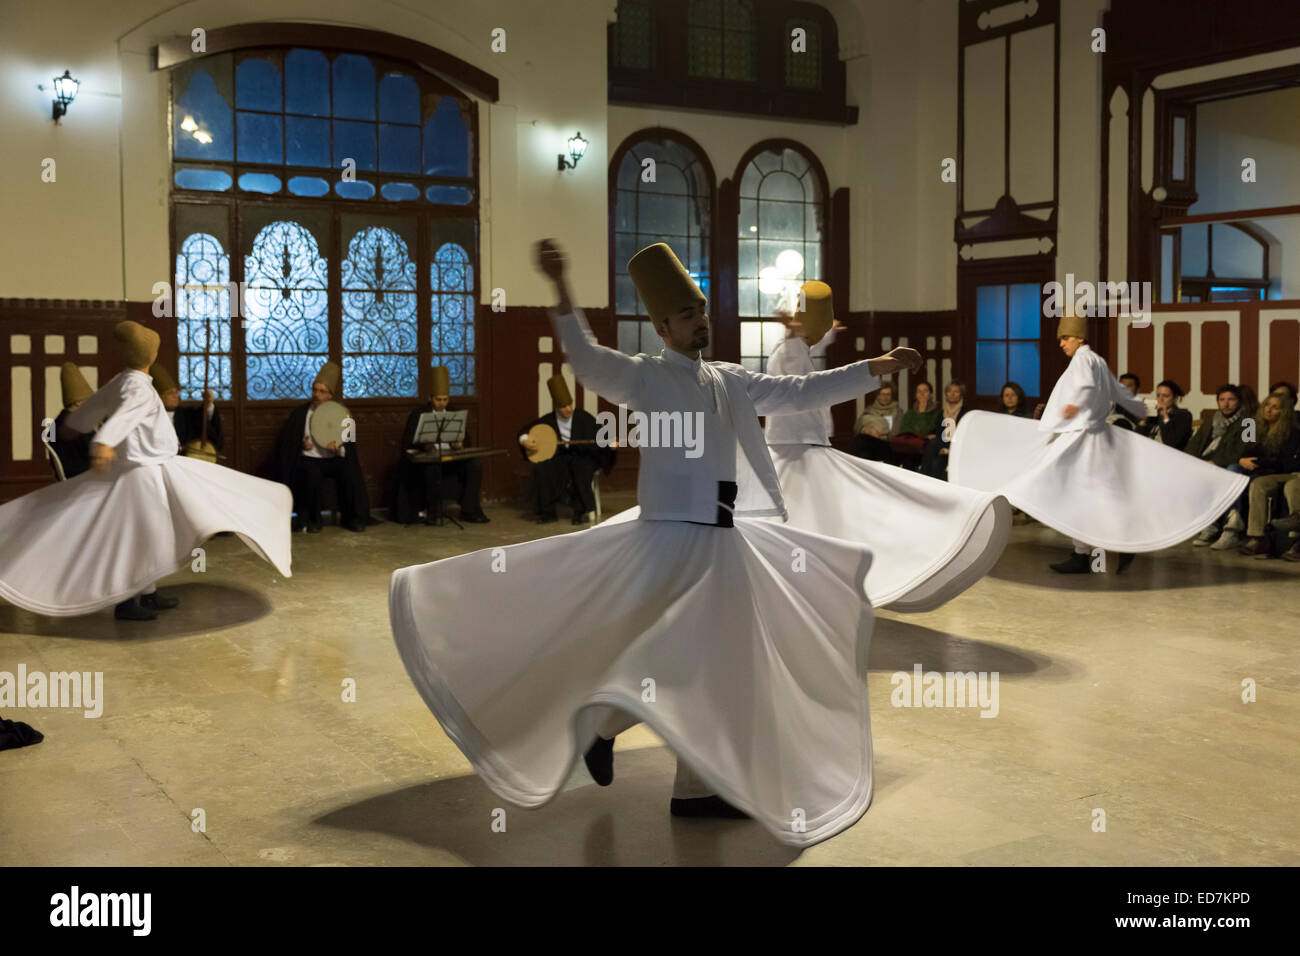 Tourists at Whirling Dervish ayin music performance - Mevlevi Sema - ceremony (whirling dervishes), Istanbul, Republic - Stock Image